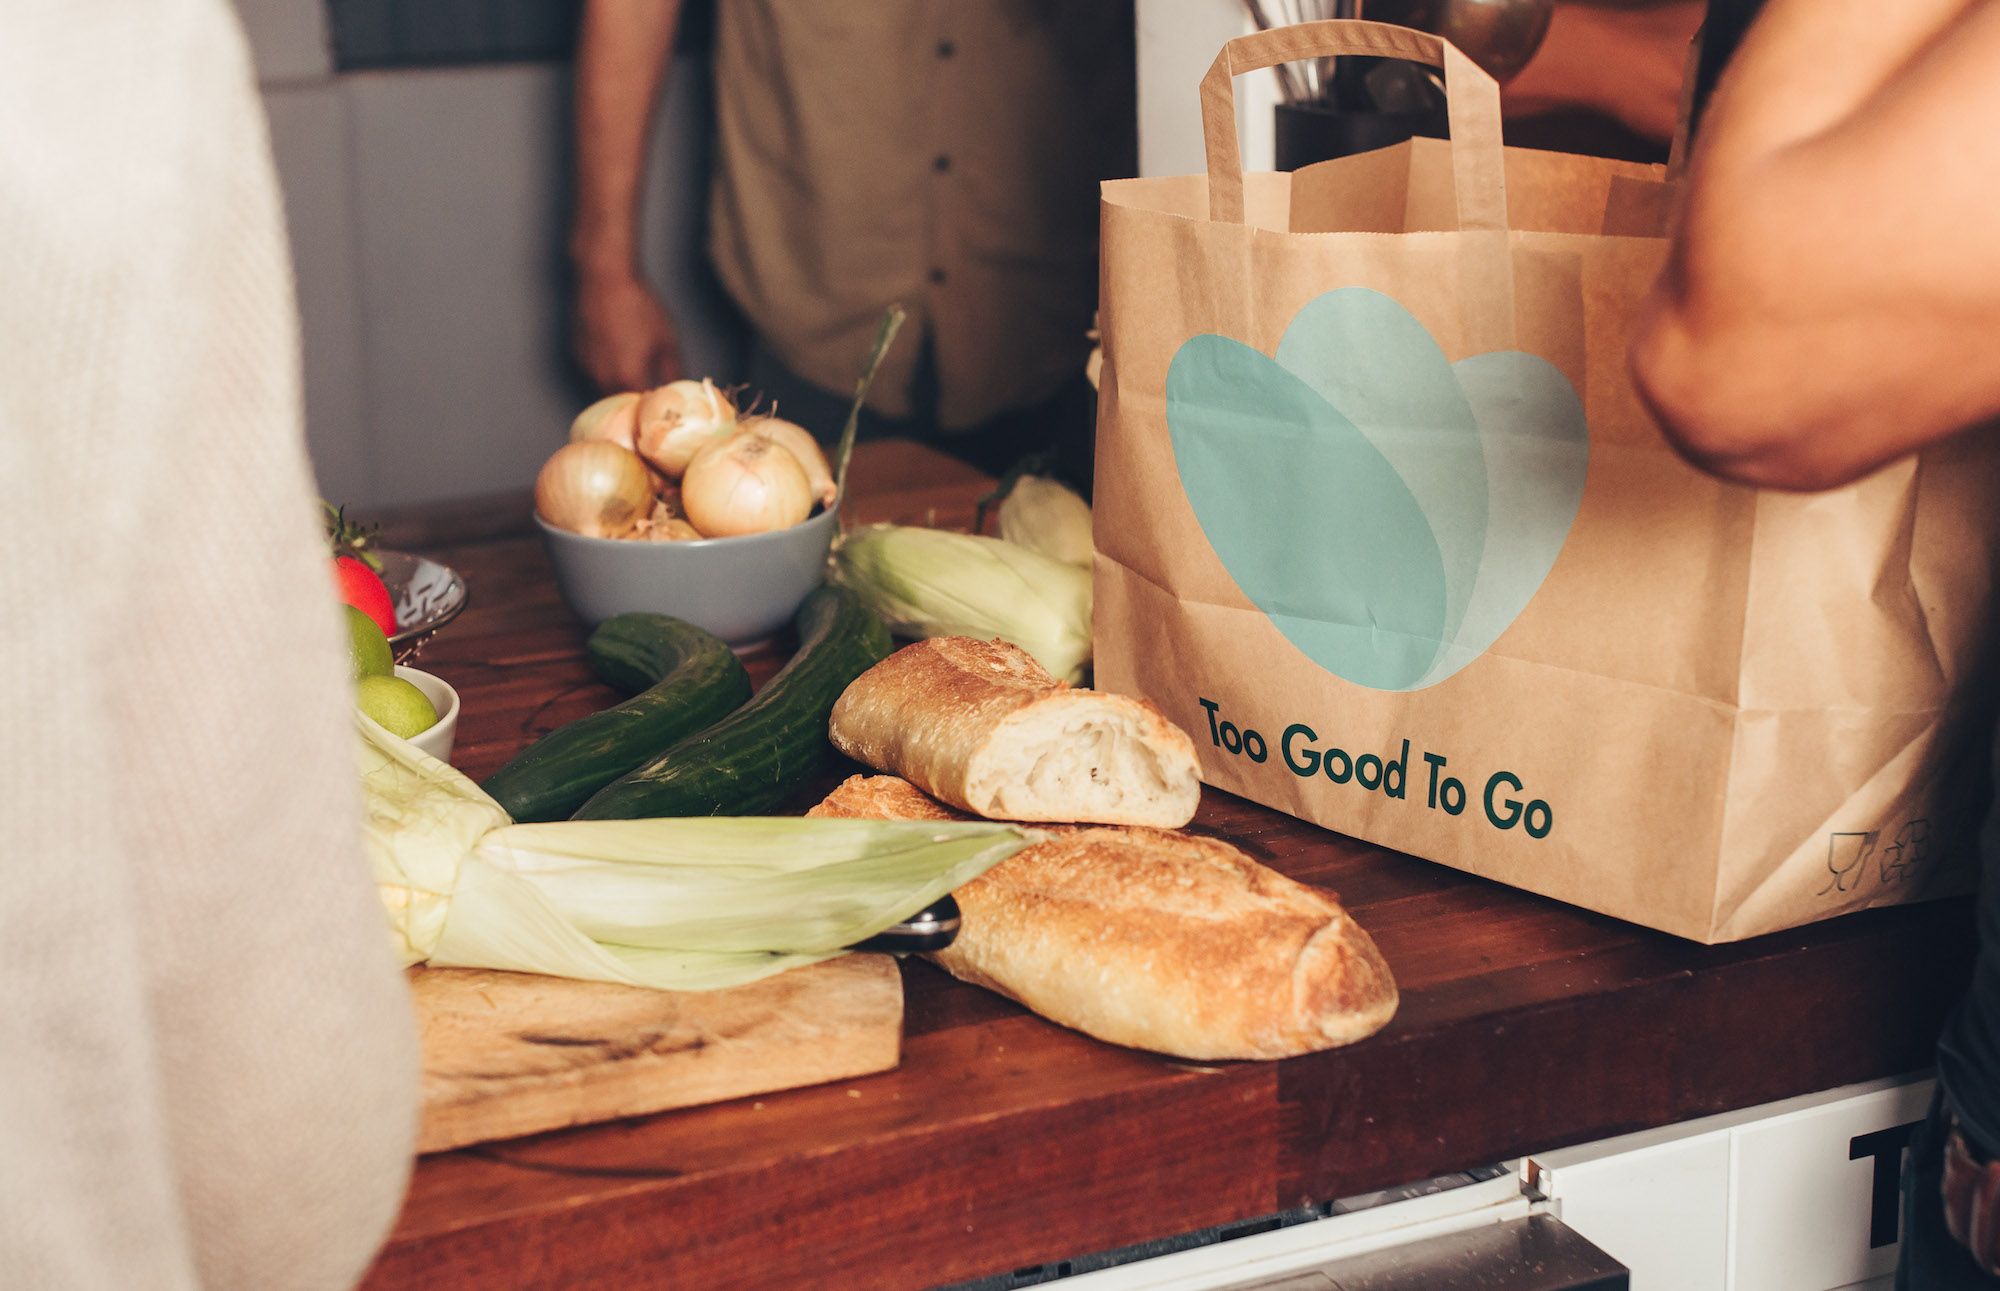 A photo of bread, onions, and zucchini on a wooden table (left) and a large brown paper bag with three blue circles and the words